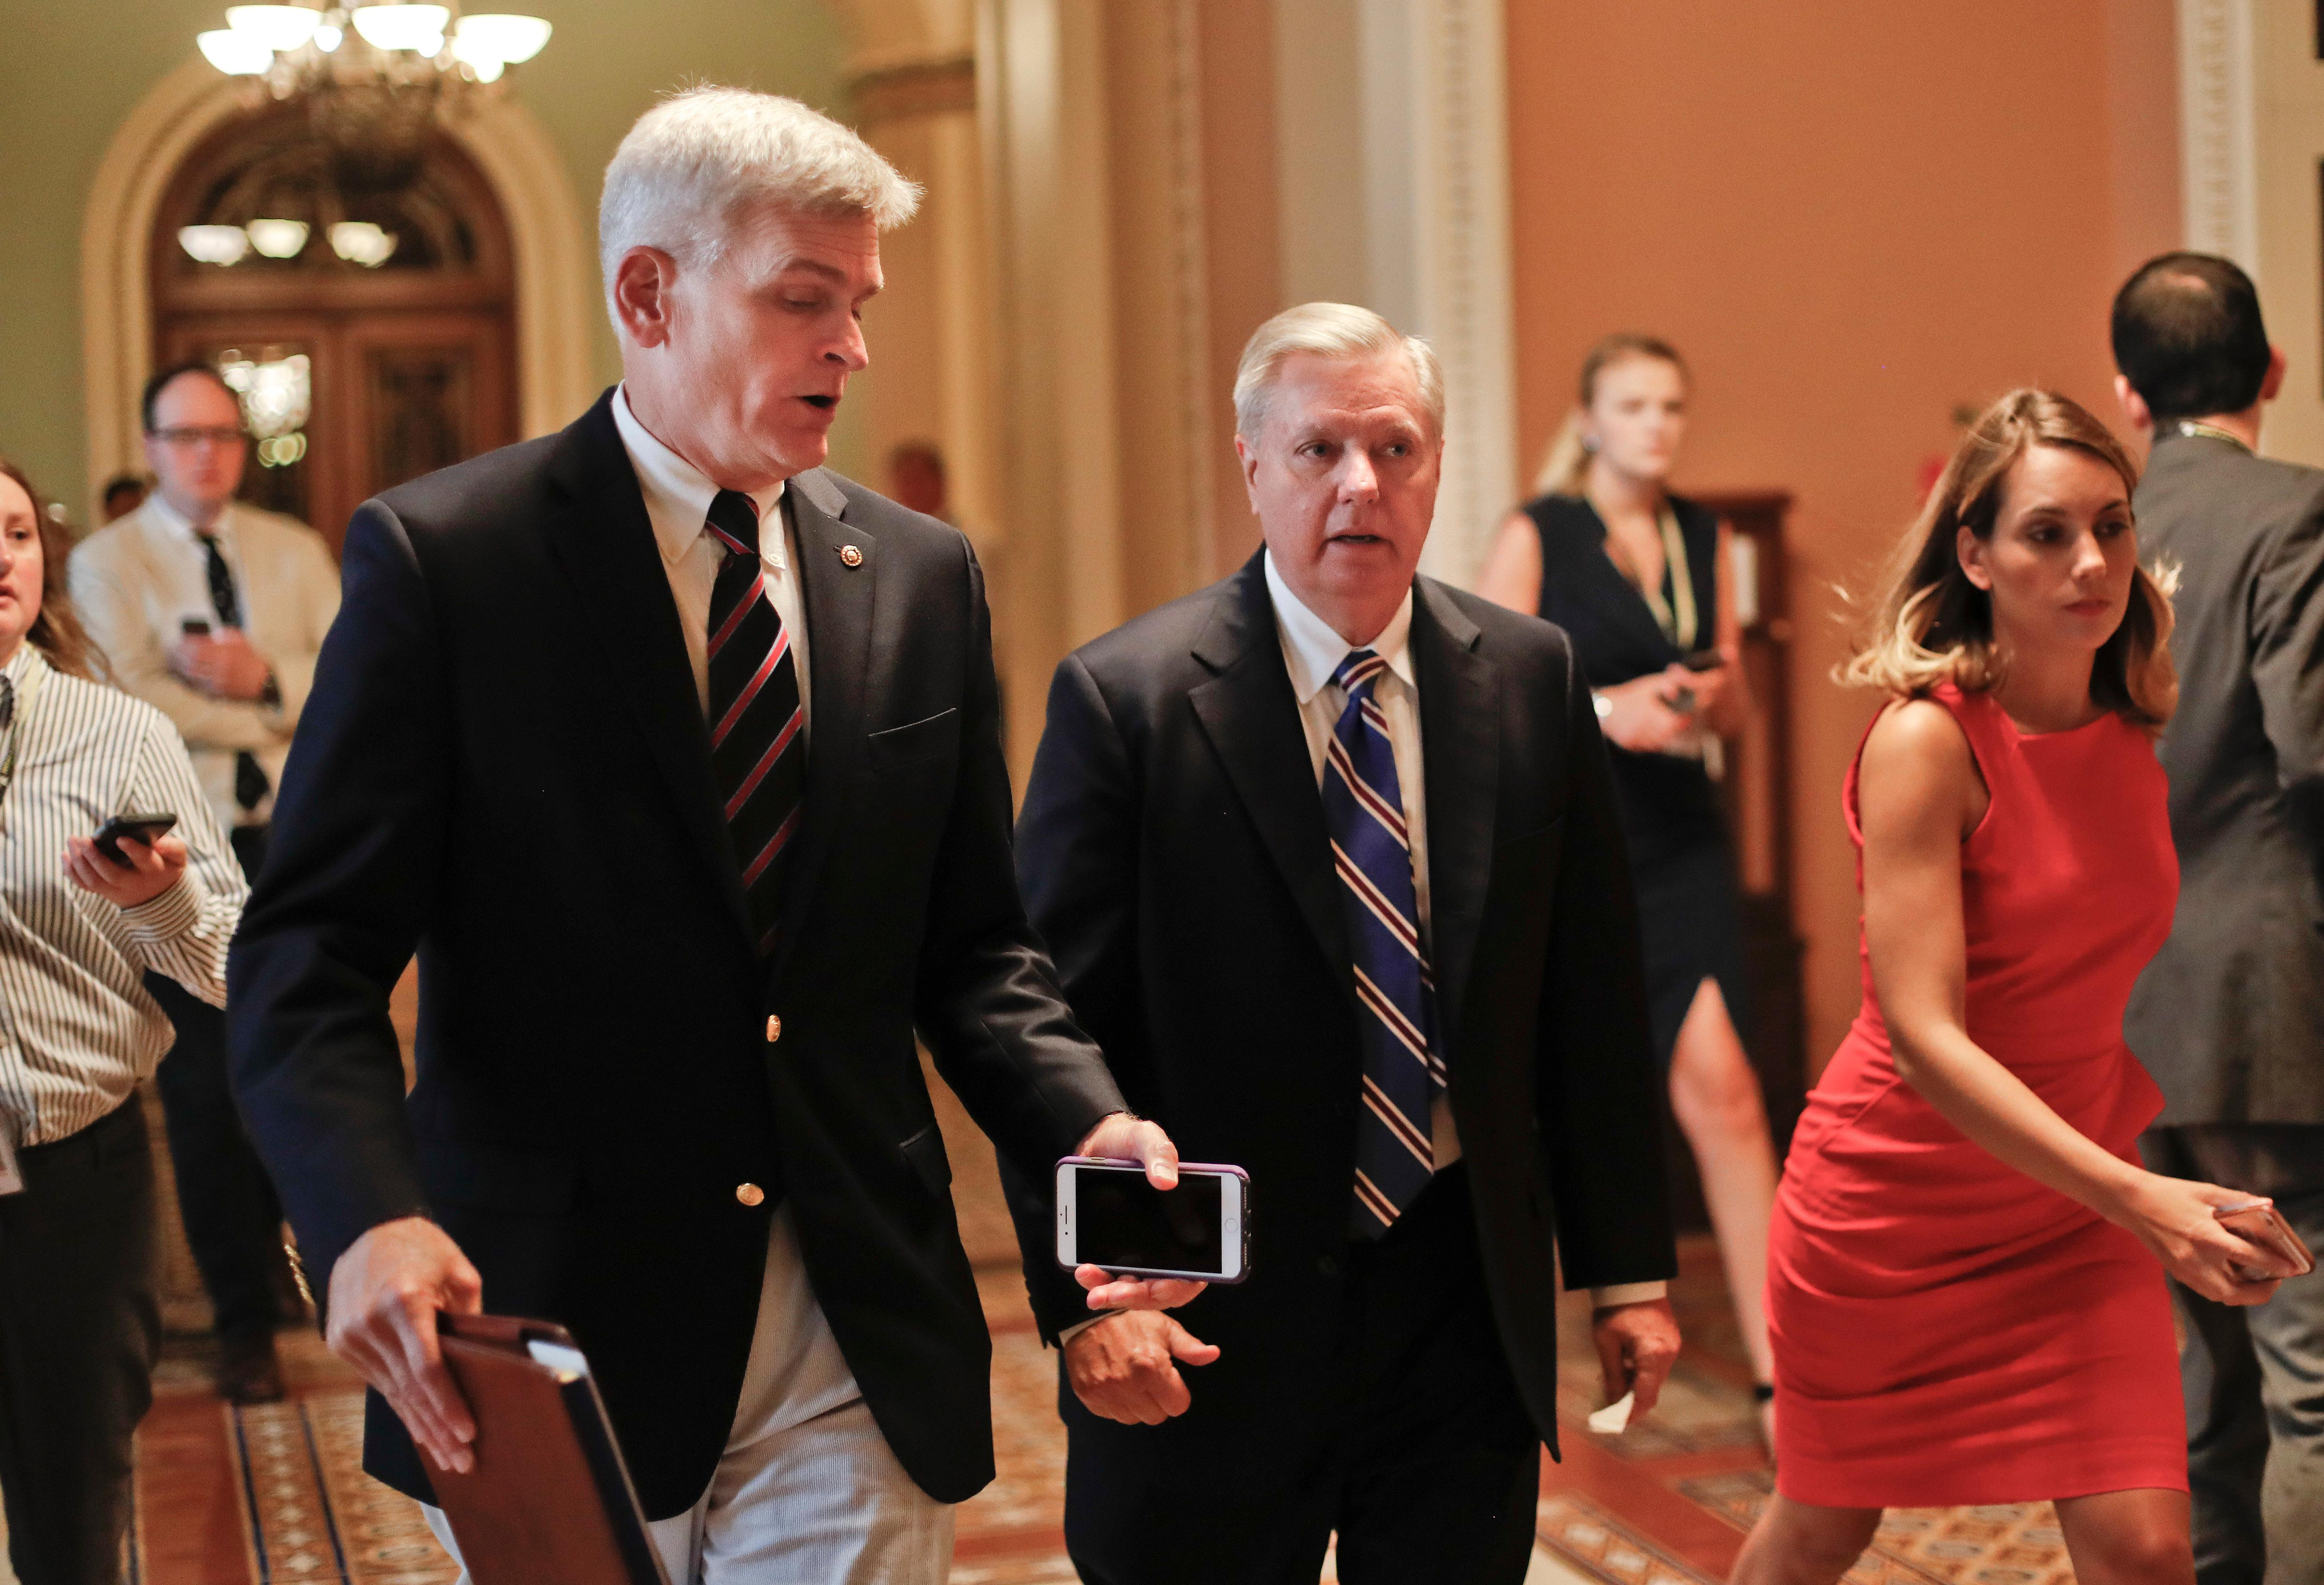 Sen. Bill Cassidy, R-La., left, and Sen. Lindsey Graham, R-S.C., right, talk while walking to a meeting on Capitol Hill in Washington Thursday, July 13, 2017.  (AP Photo/Pablo Martinez Monsivais)